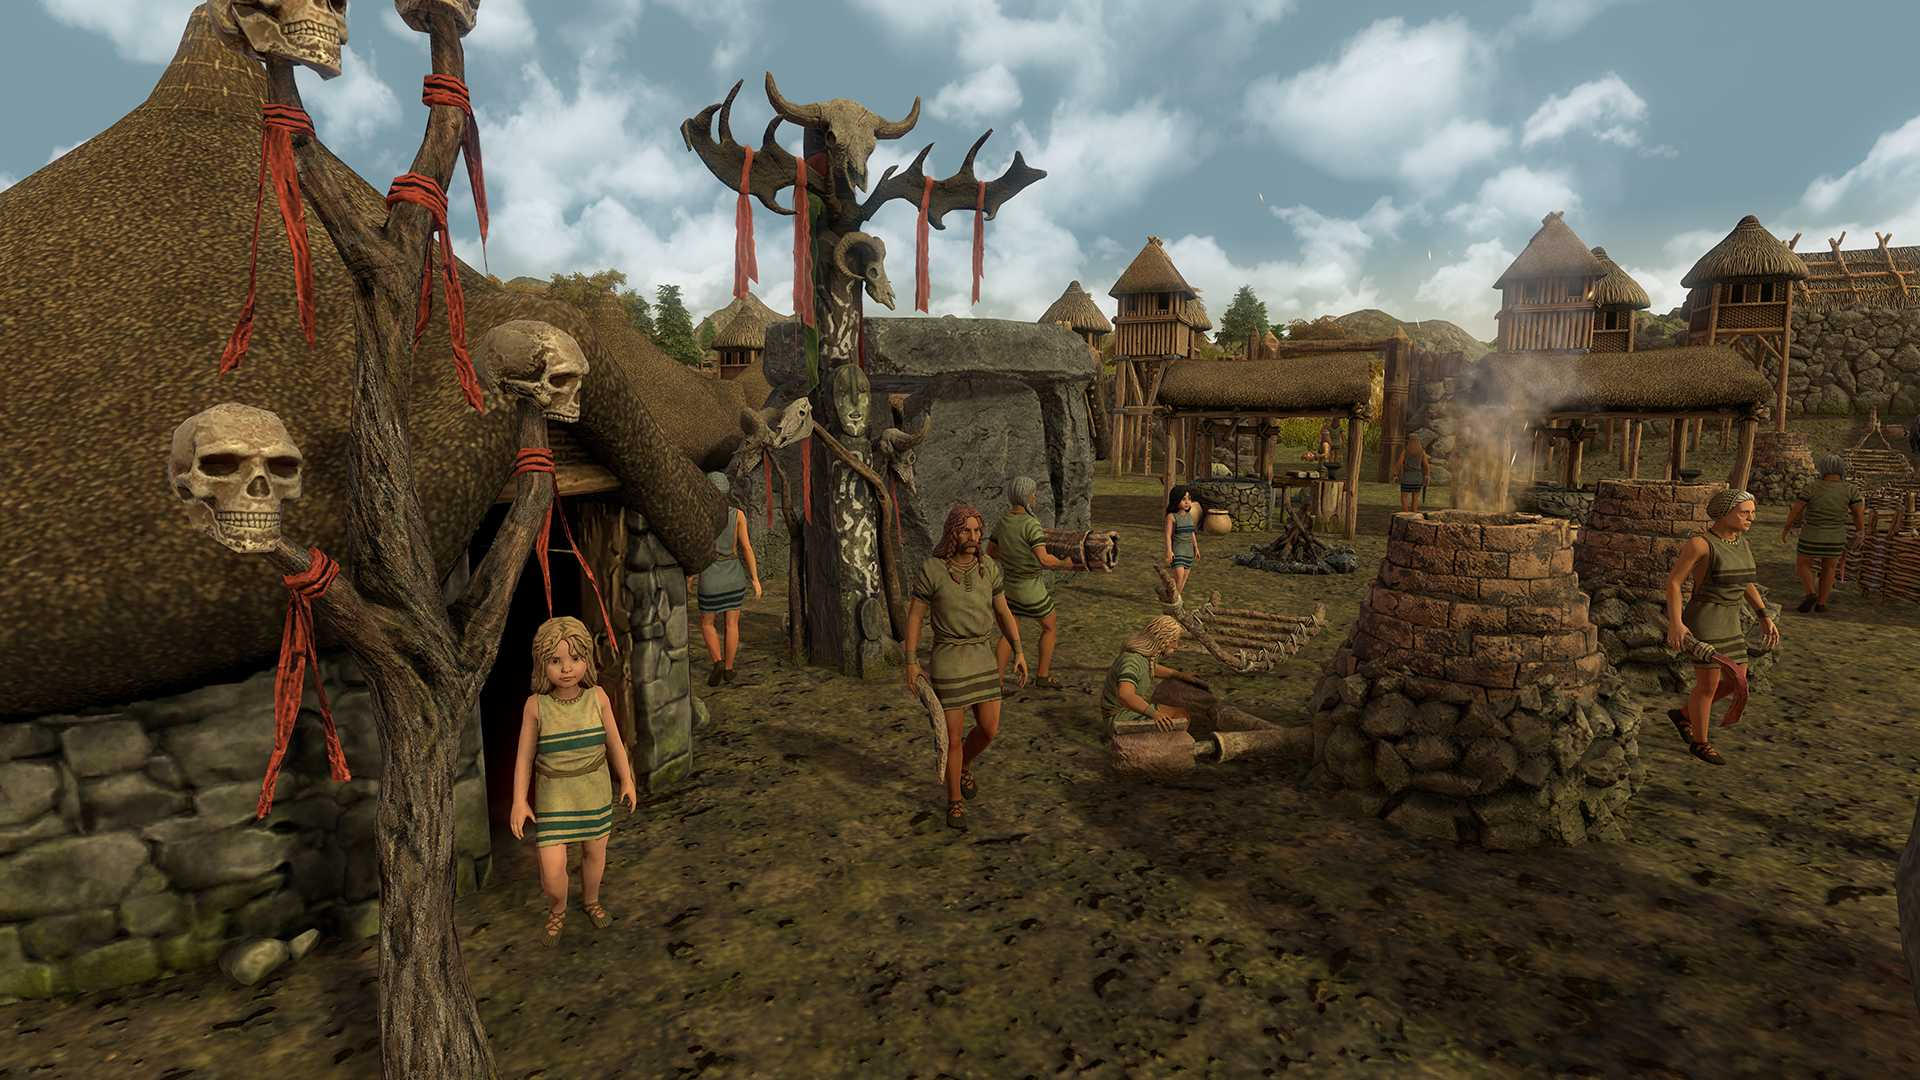 dawn of man, dawn of man game review, dawn of man gameplay, dawn of man review